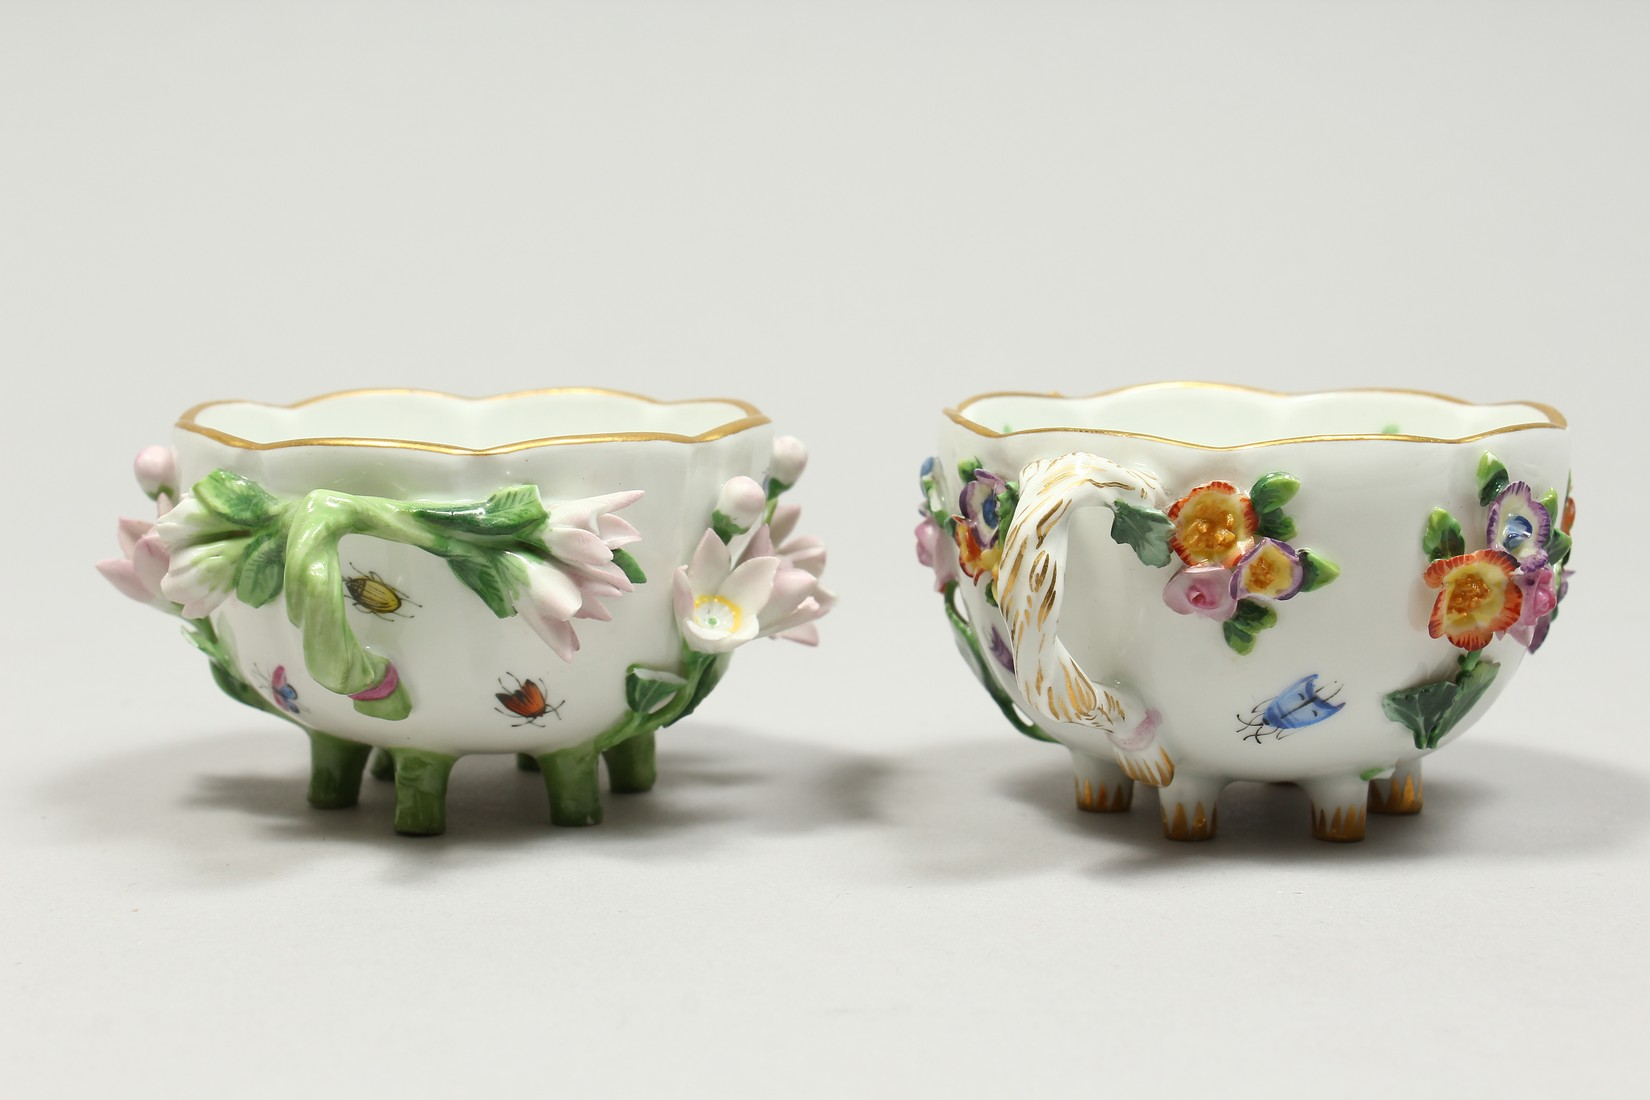 TWO MEISSEN PORCELAIN CUPS AND SAUCERS AND A SAUCER, encrusted with flowers and painted with - Image 5 of 16